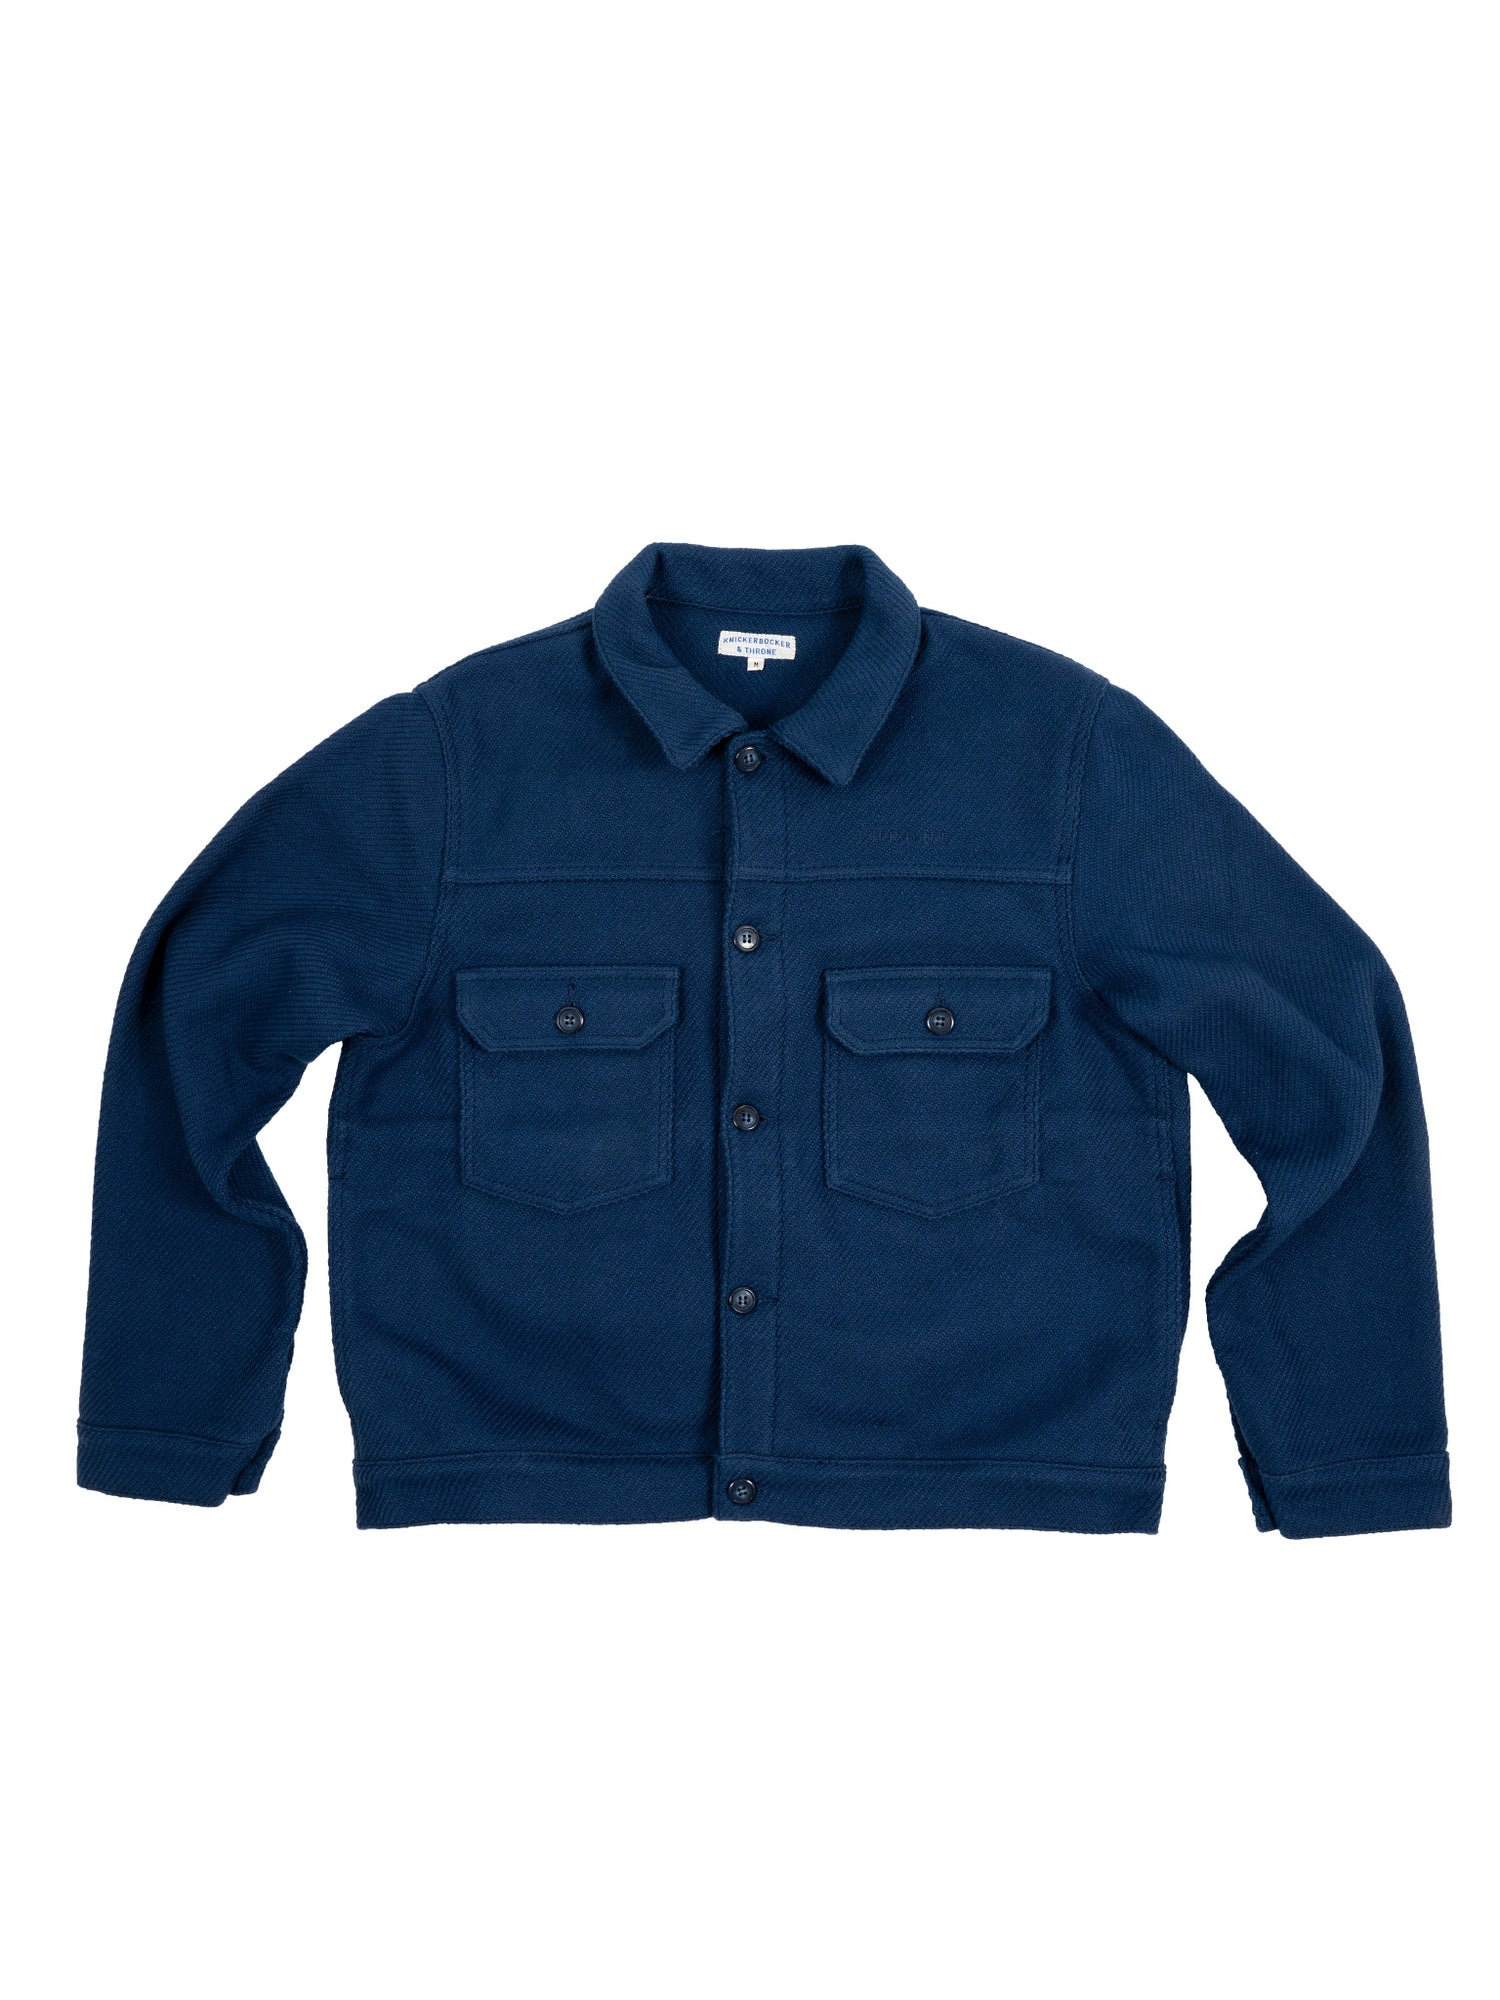 Throne x Knickerbocker Trucker Jacket in Indigo